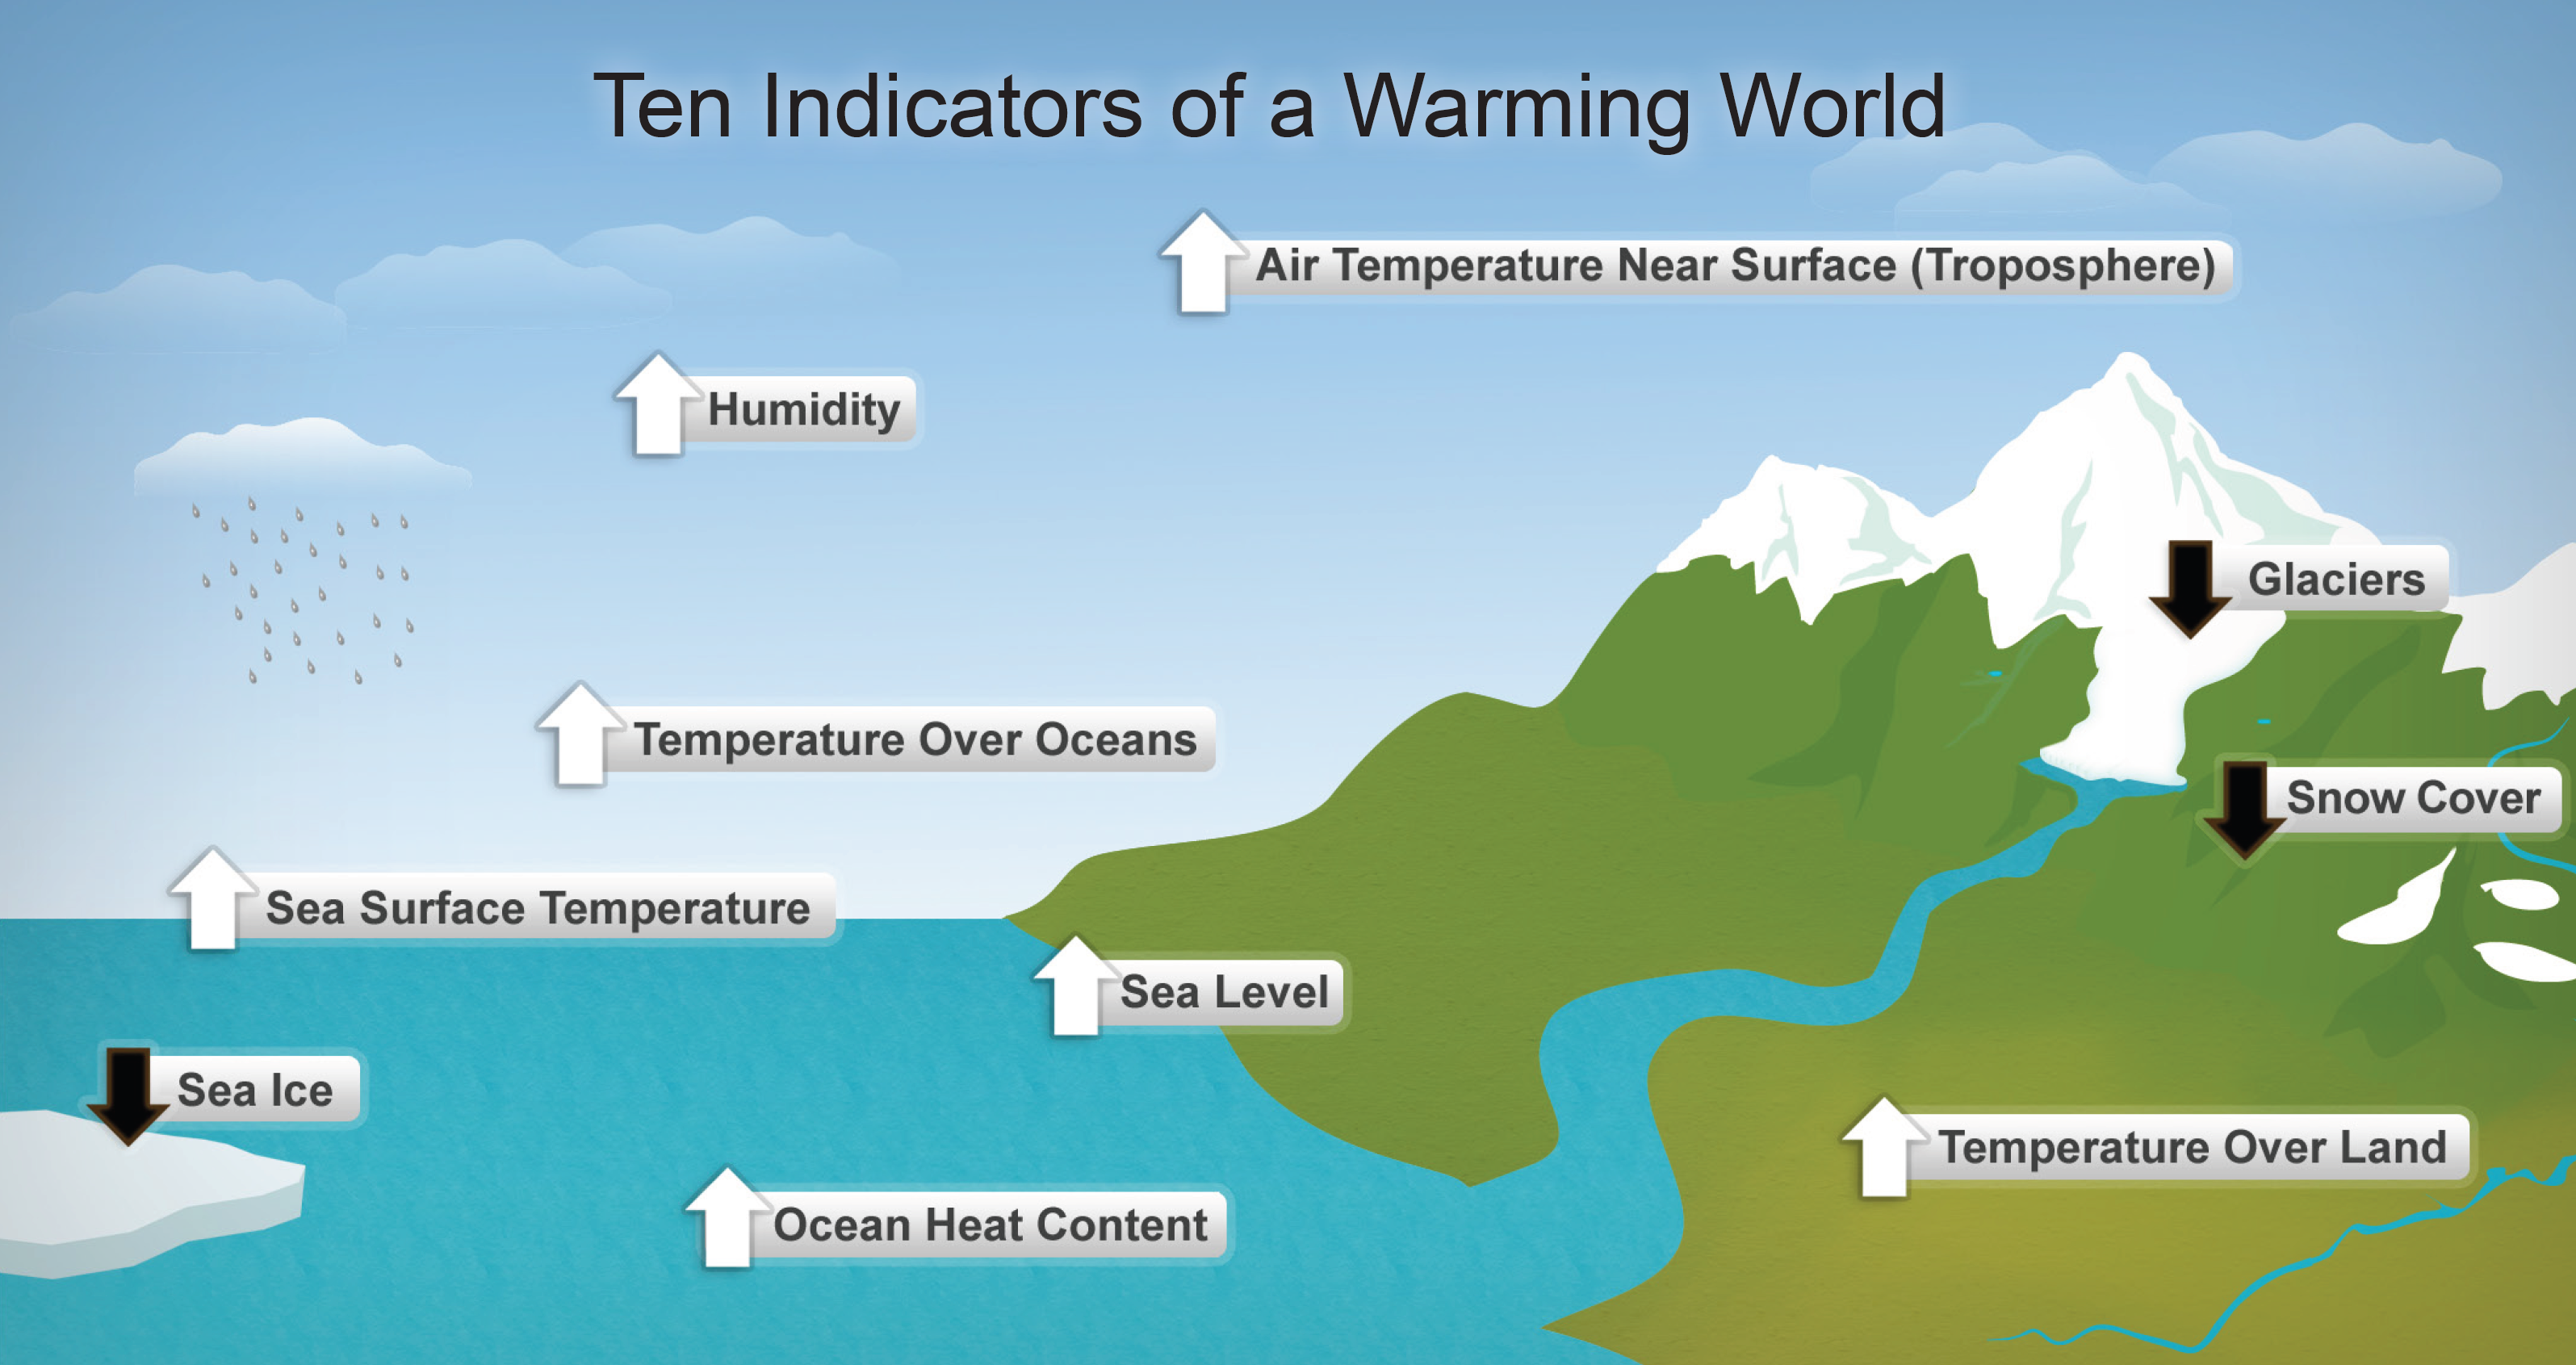 Global Warming Indicators